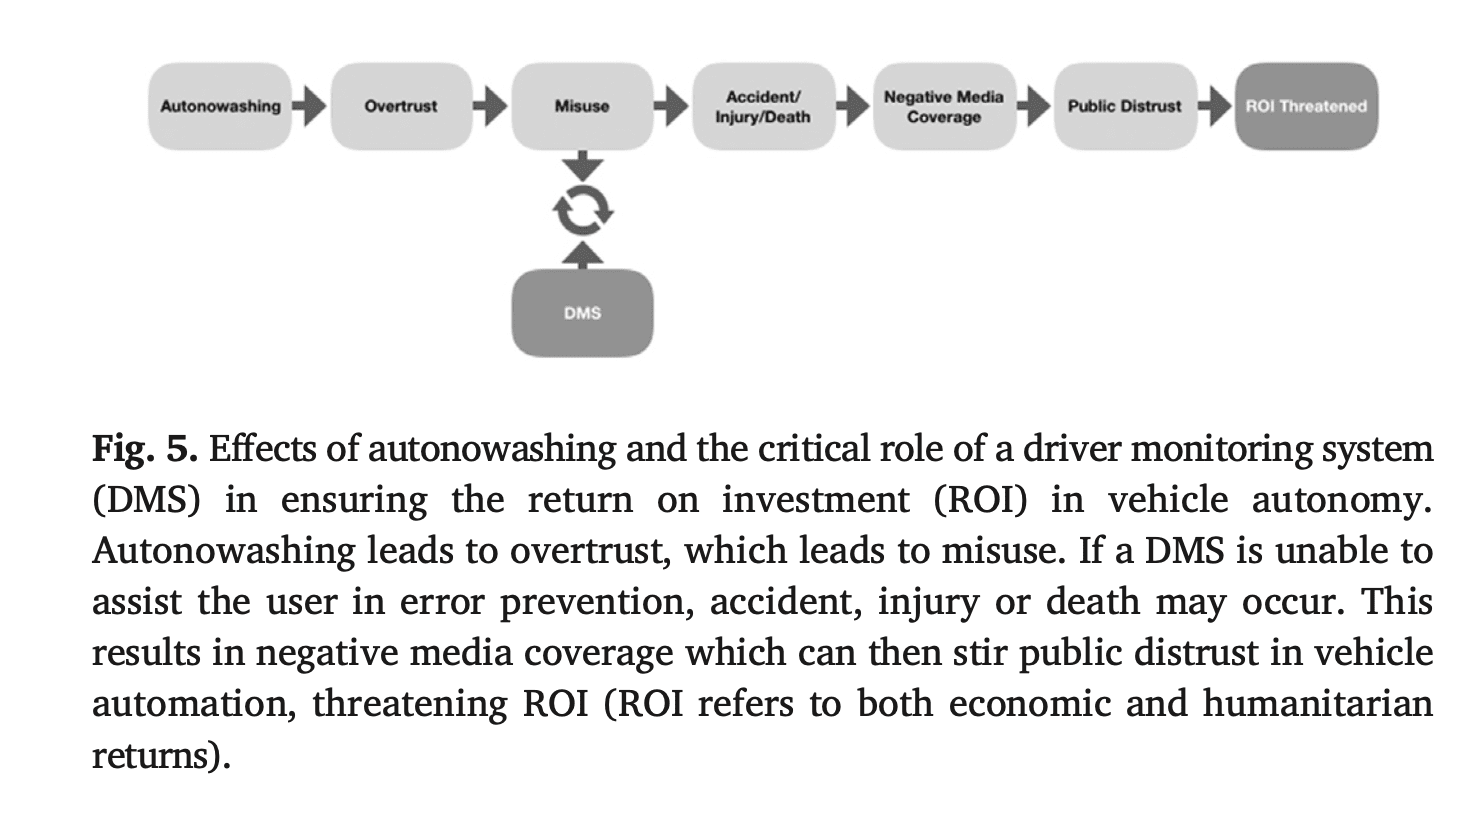 roi, outcomes, autonowashing, chain